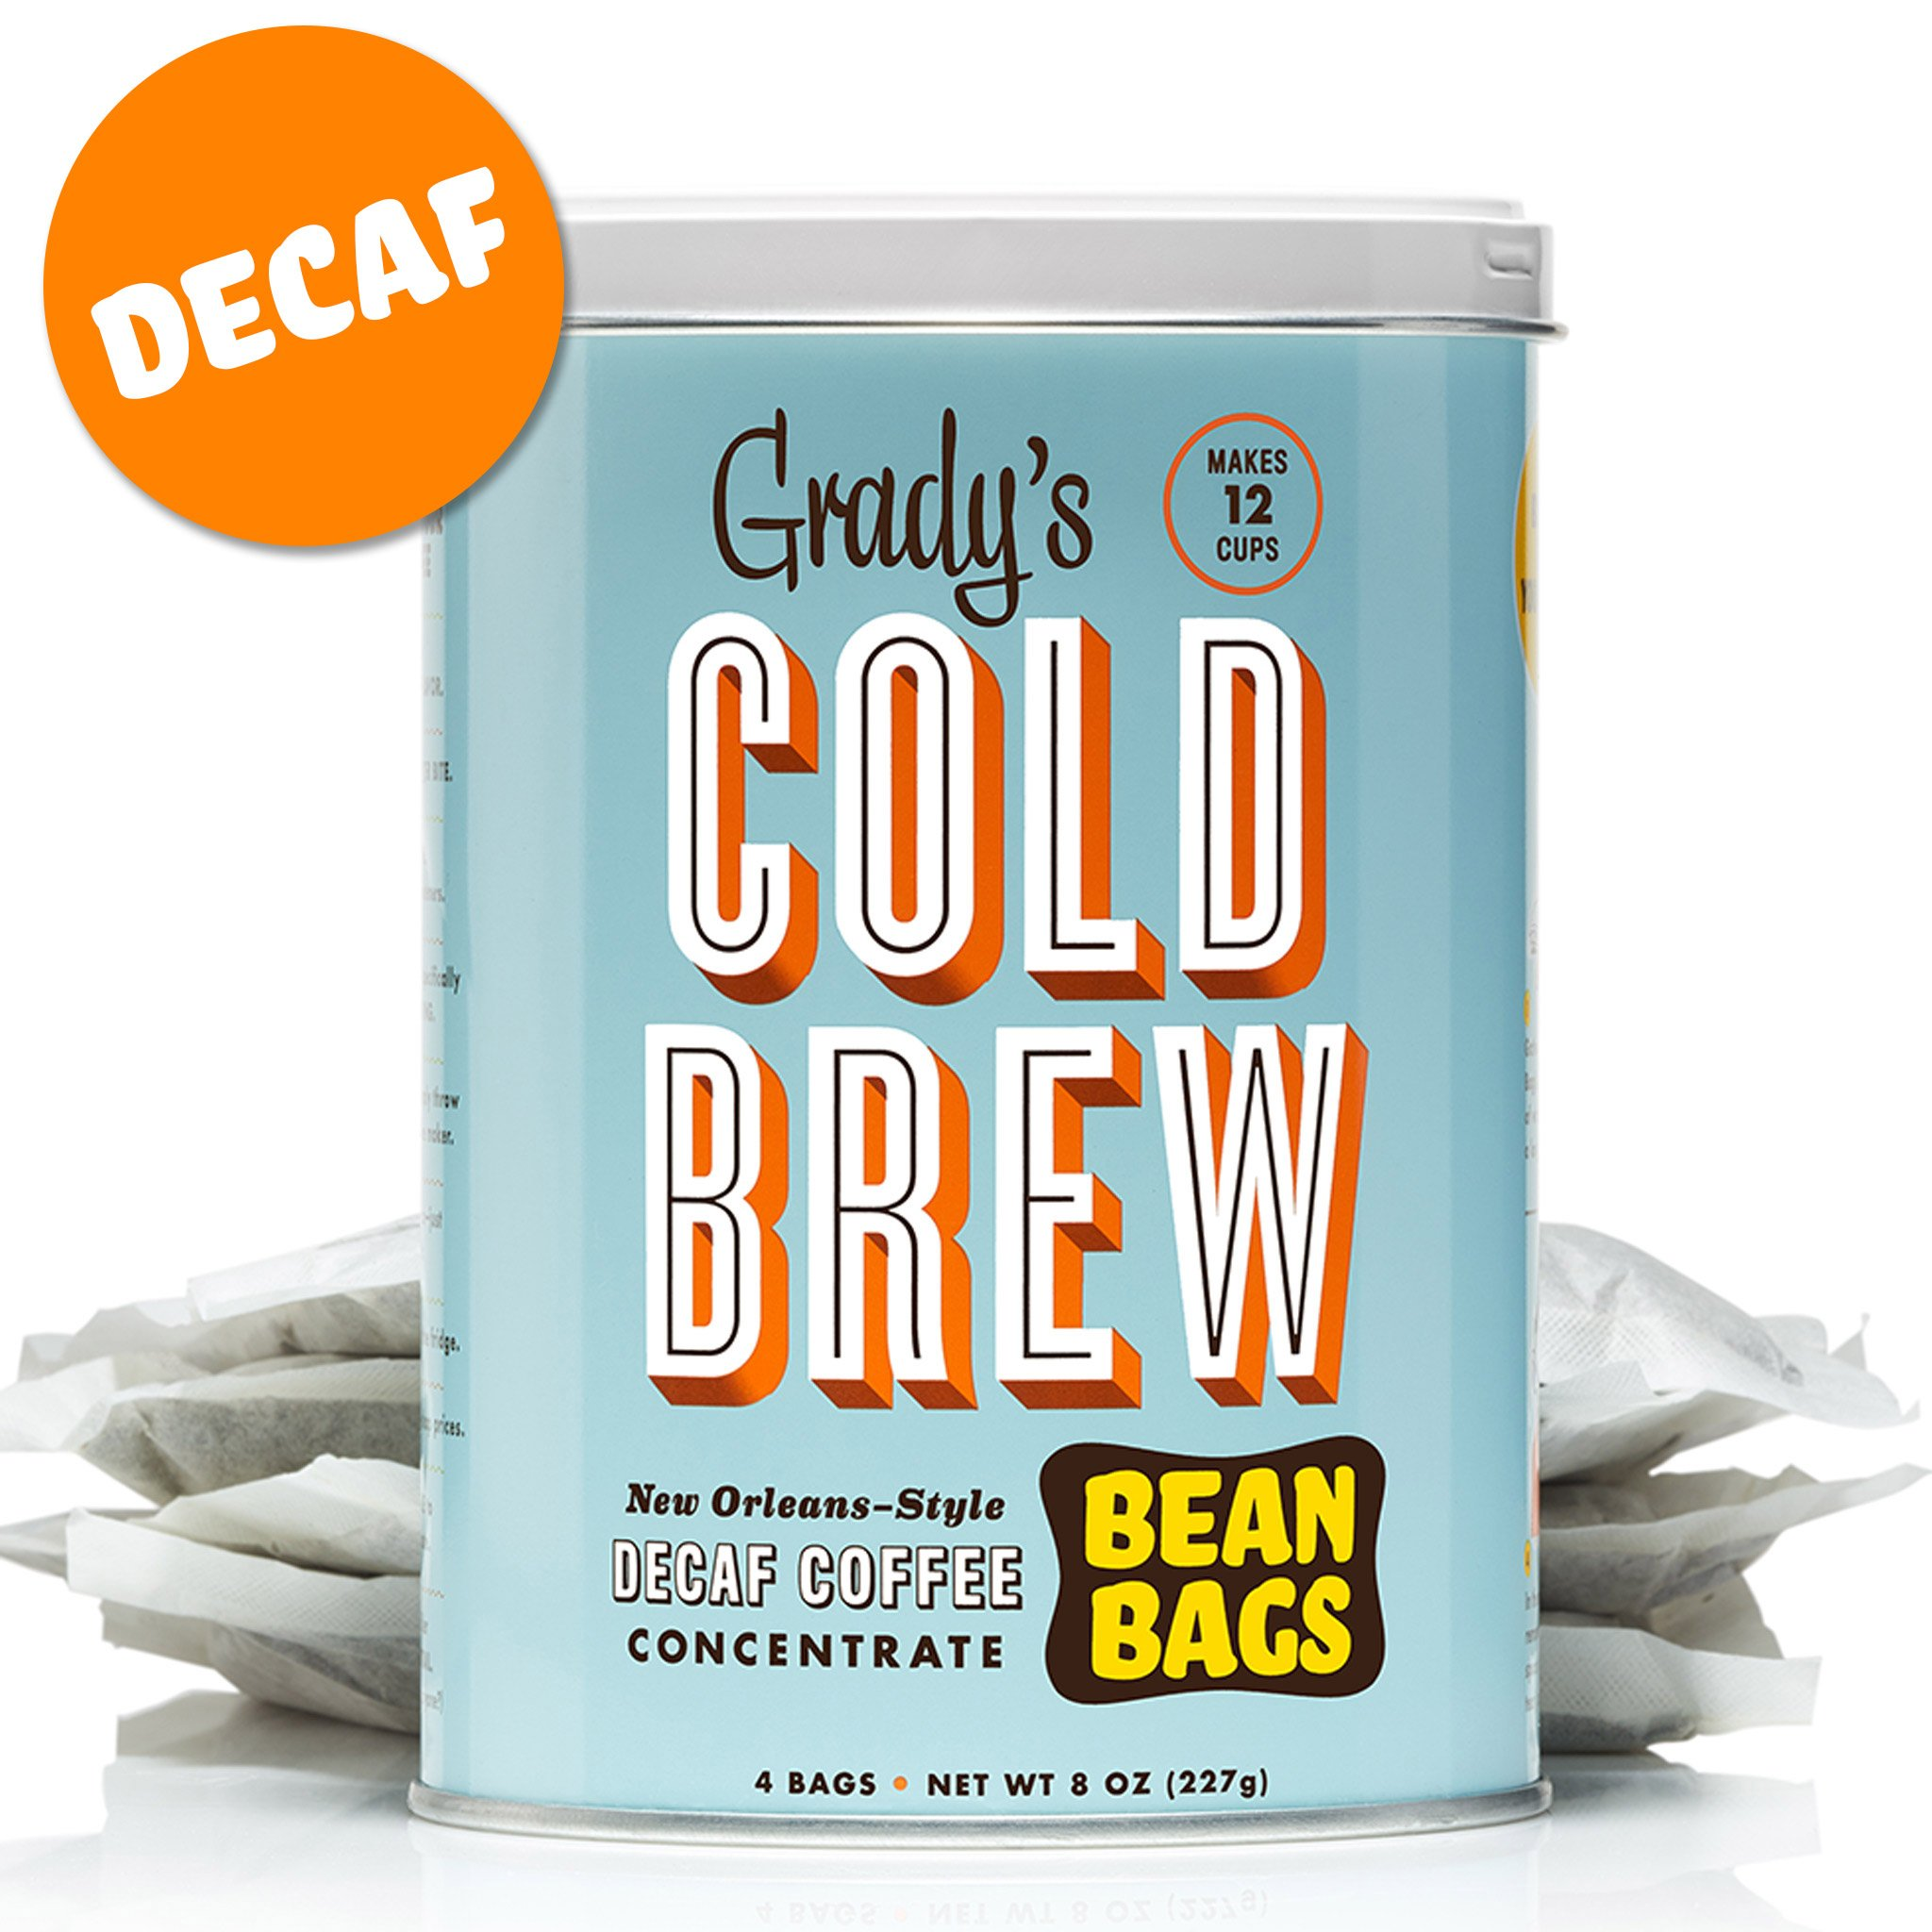 Grady's Cold Brew Iced Decaf Coffee Bean Bags (Decaf, 2 Can) by Grady's Cold Brew